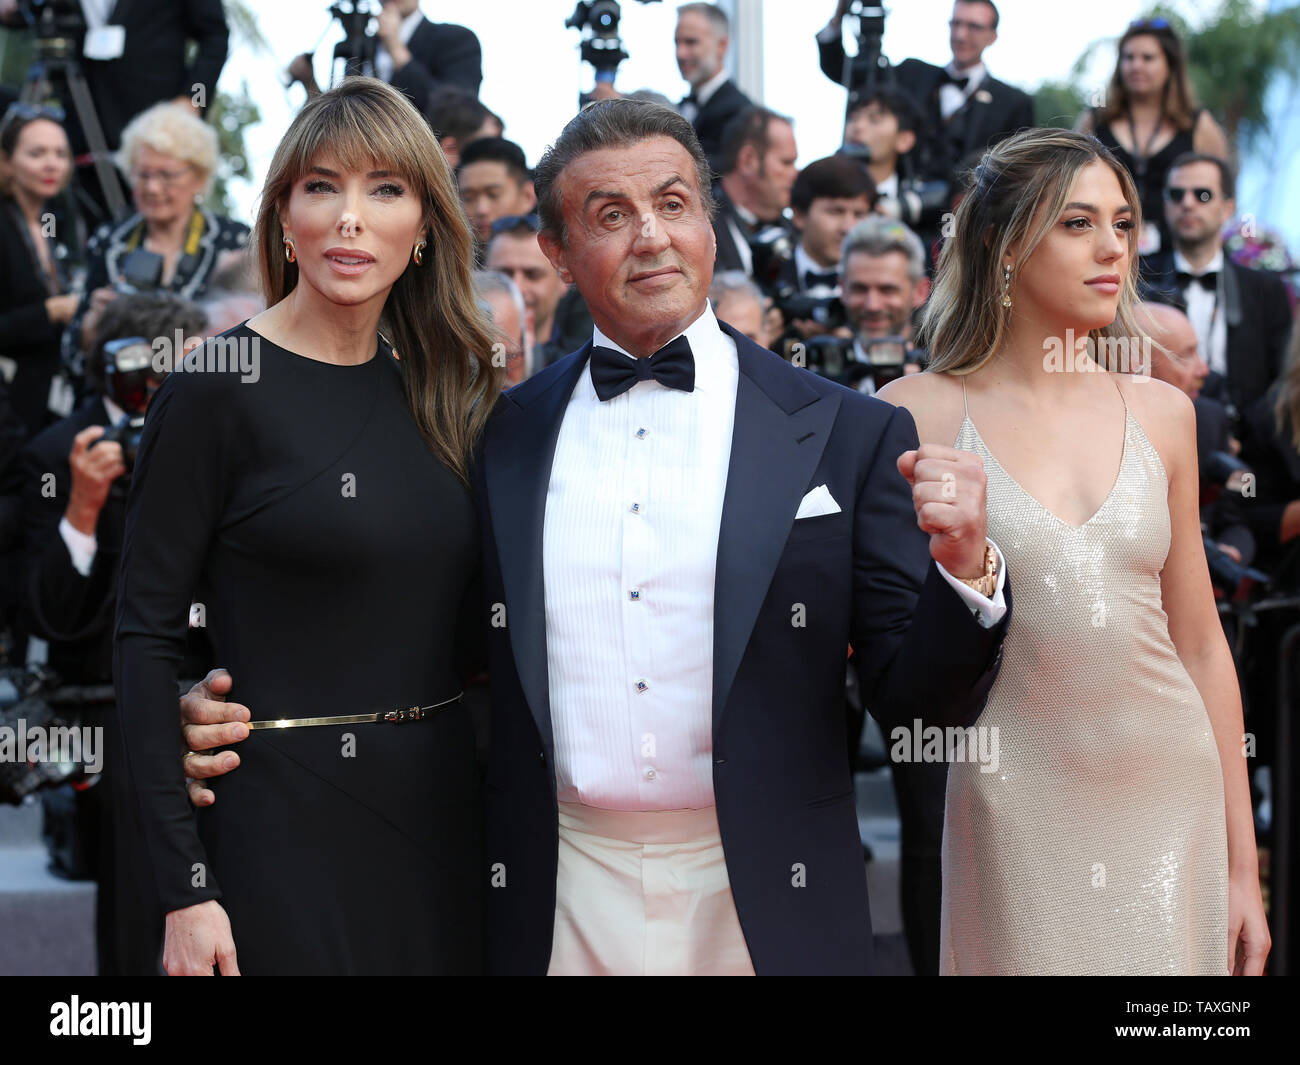 CANNES, FRANCE - MAY 25: Sylvester Stallone attends the Closing Ceremony of the 72nd Cannes Film Festival (Credit: Mickael Chavet/Project Daybreak/Ala - Stock Image